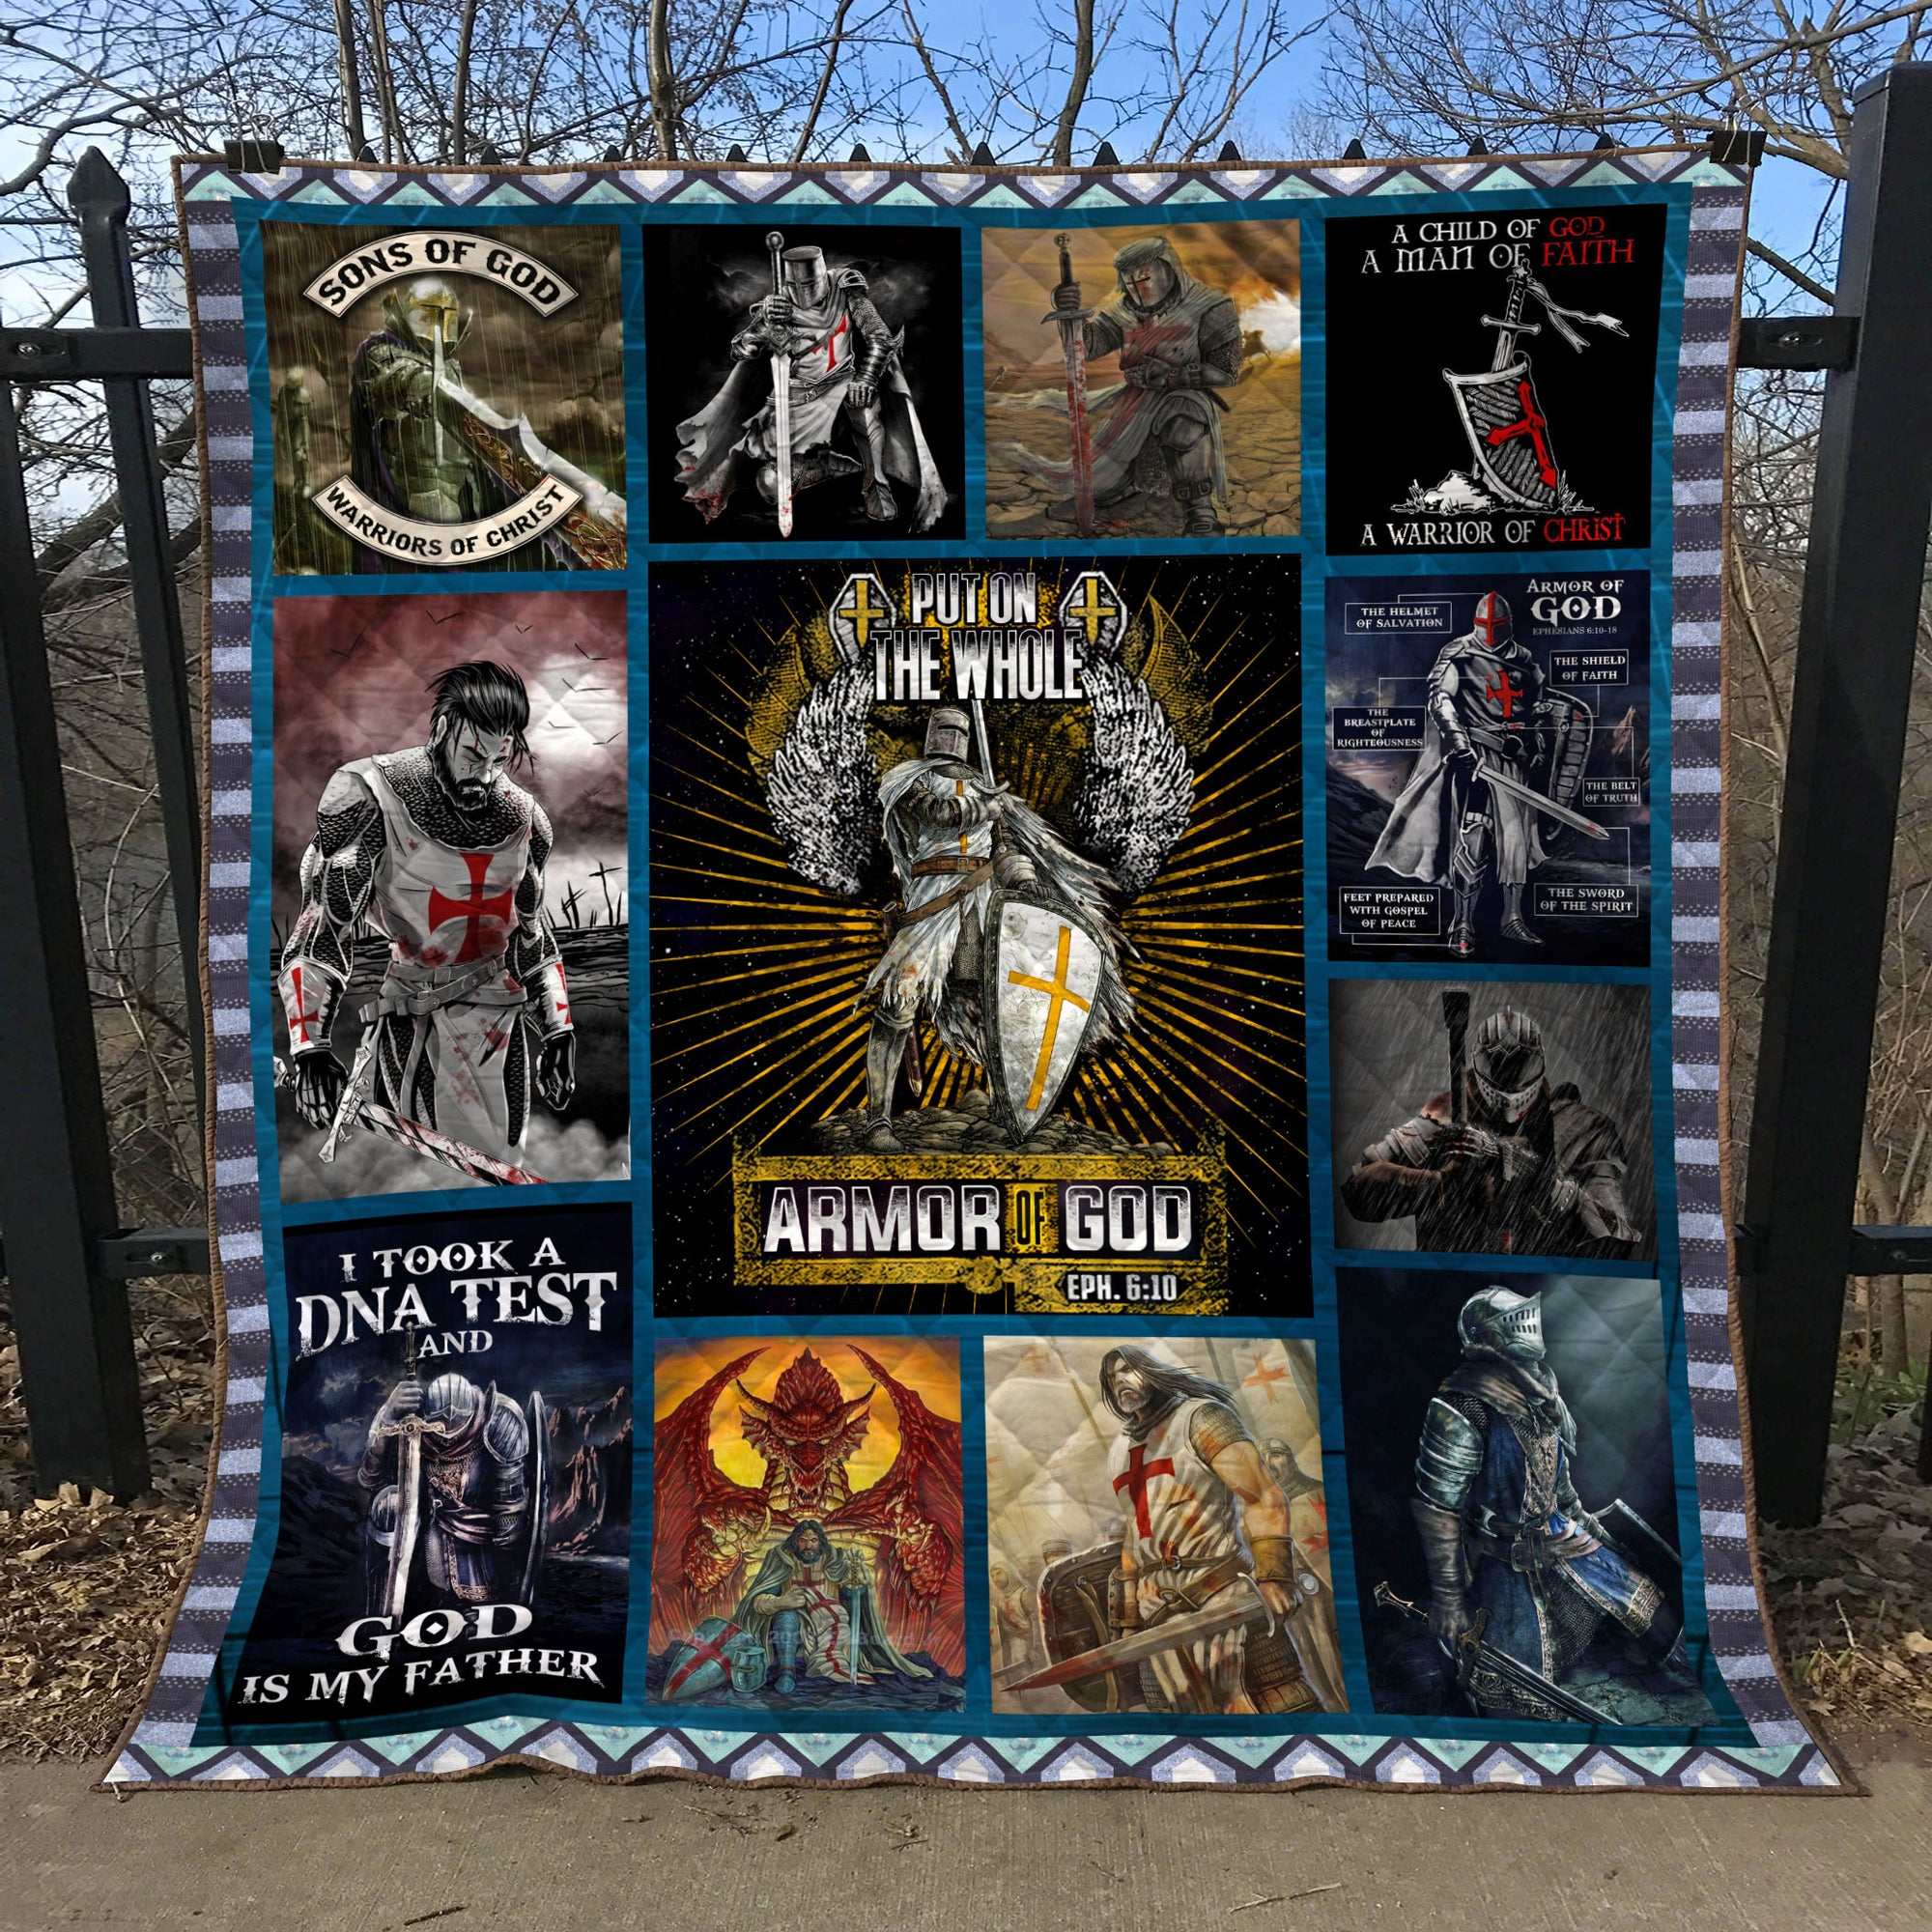 Trending Christian Quilt Collection - Armor of God ql-hg114 - GnWarriors Clothing